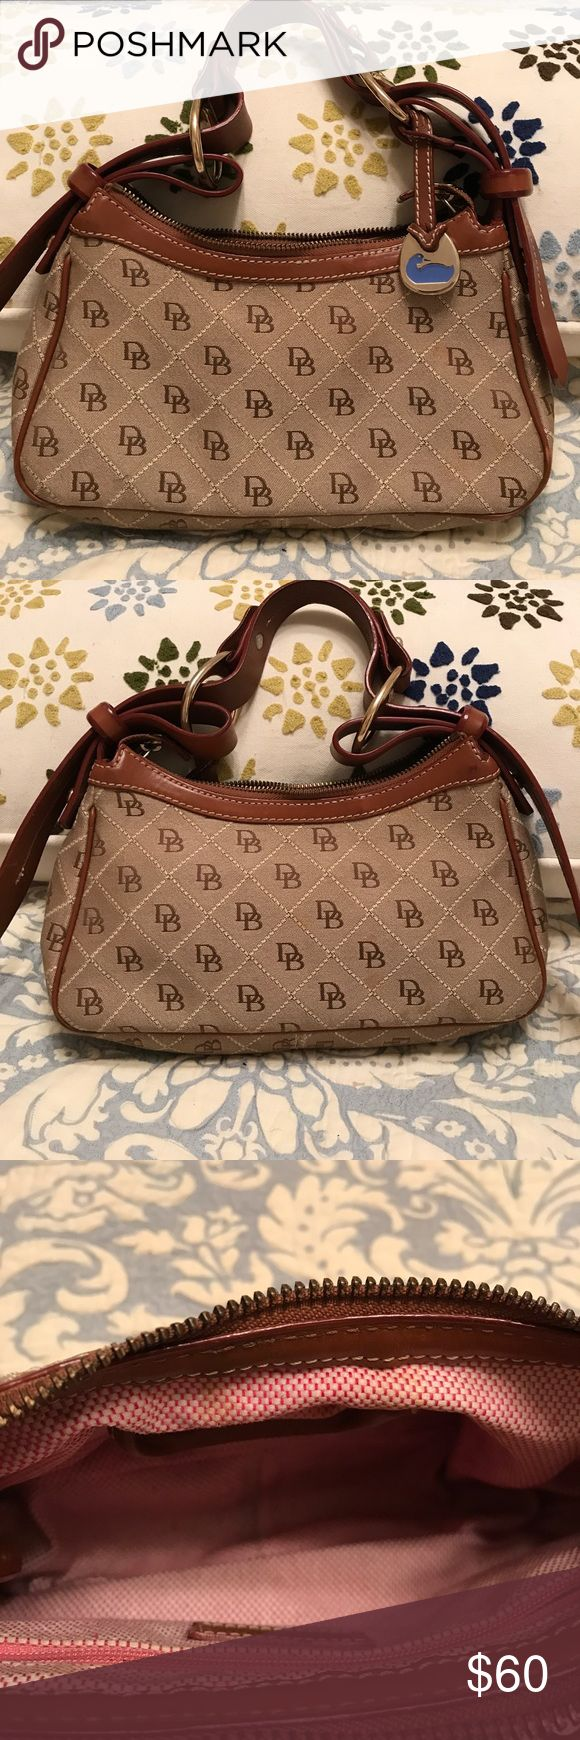 Dooney & Bourke Purse Dooney & Bourke Purse. DB patterned. Brown leather handle. Great condition! Or best offer! Dooney & Bourke Bags